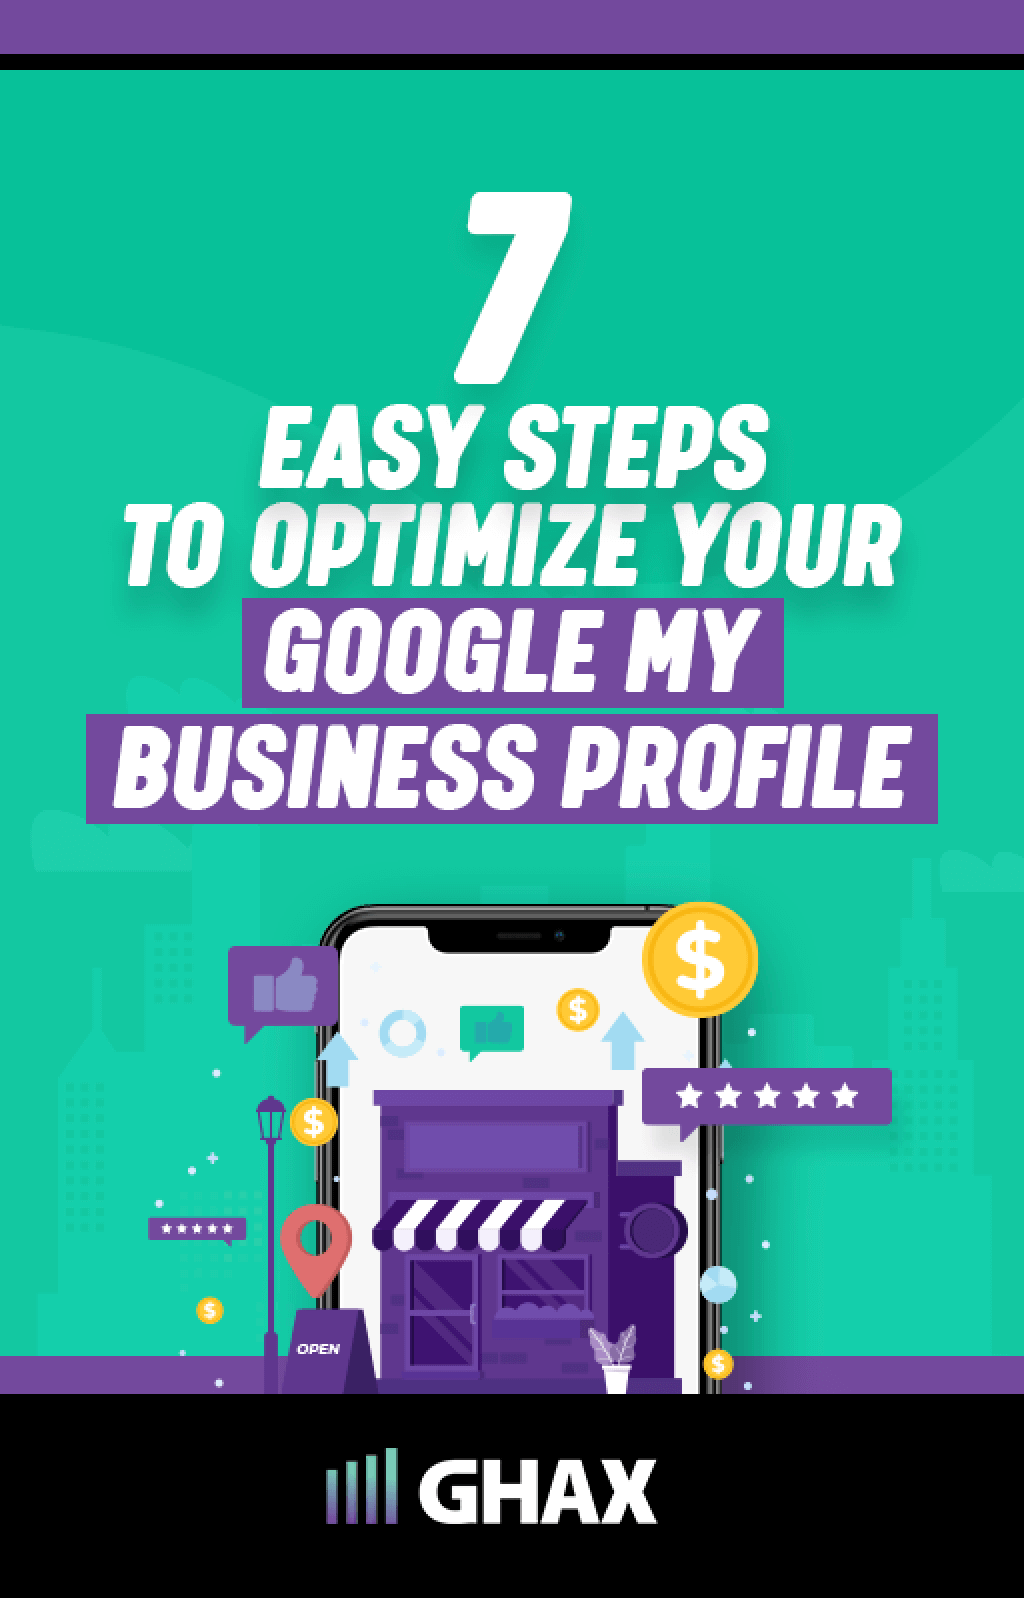 steps to optimize gmb profile guide